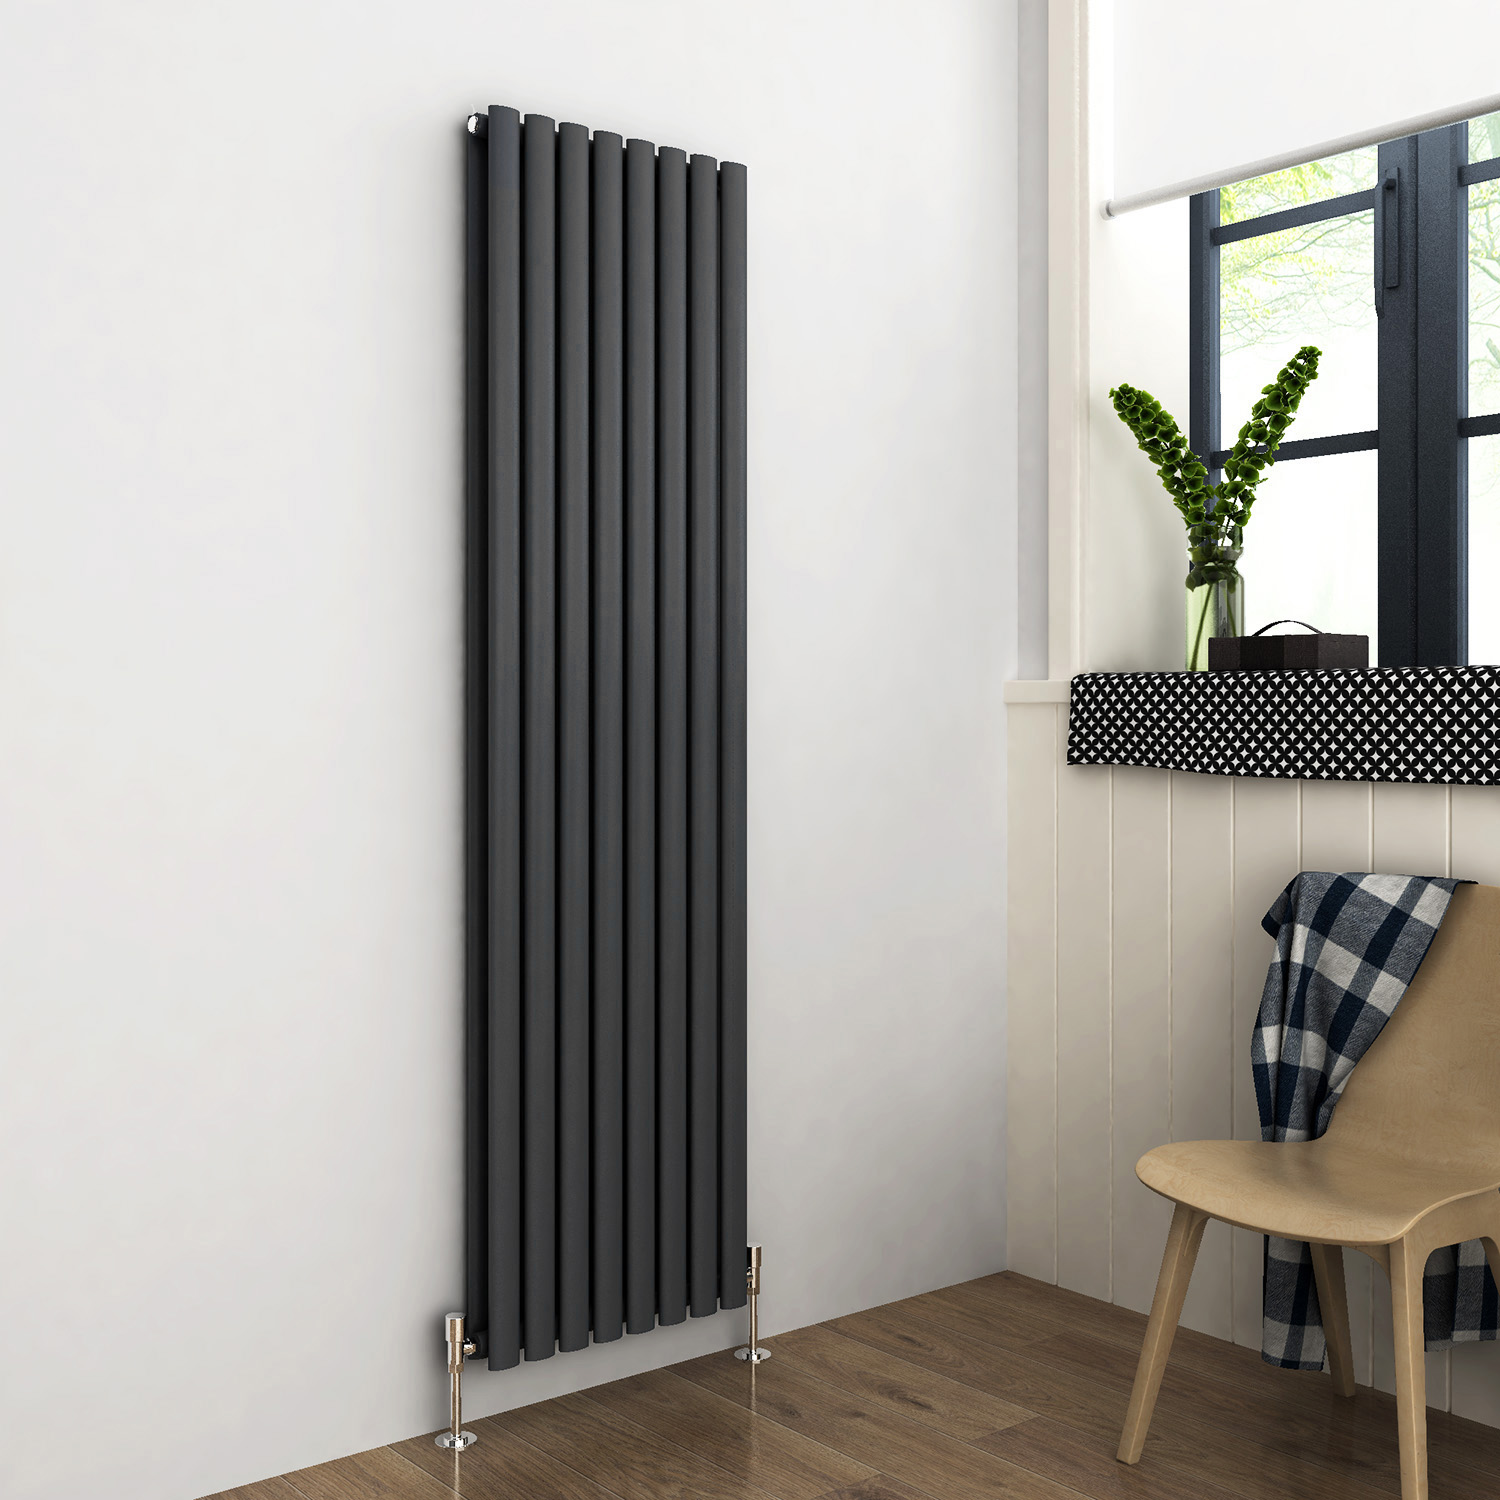 SALLY R7-48AD Decorative Radiator